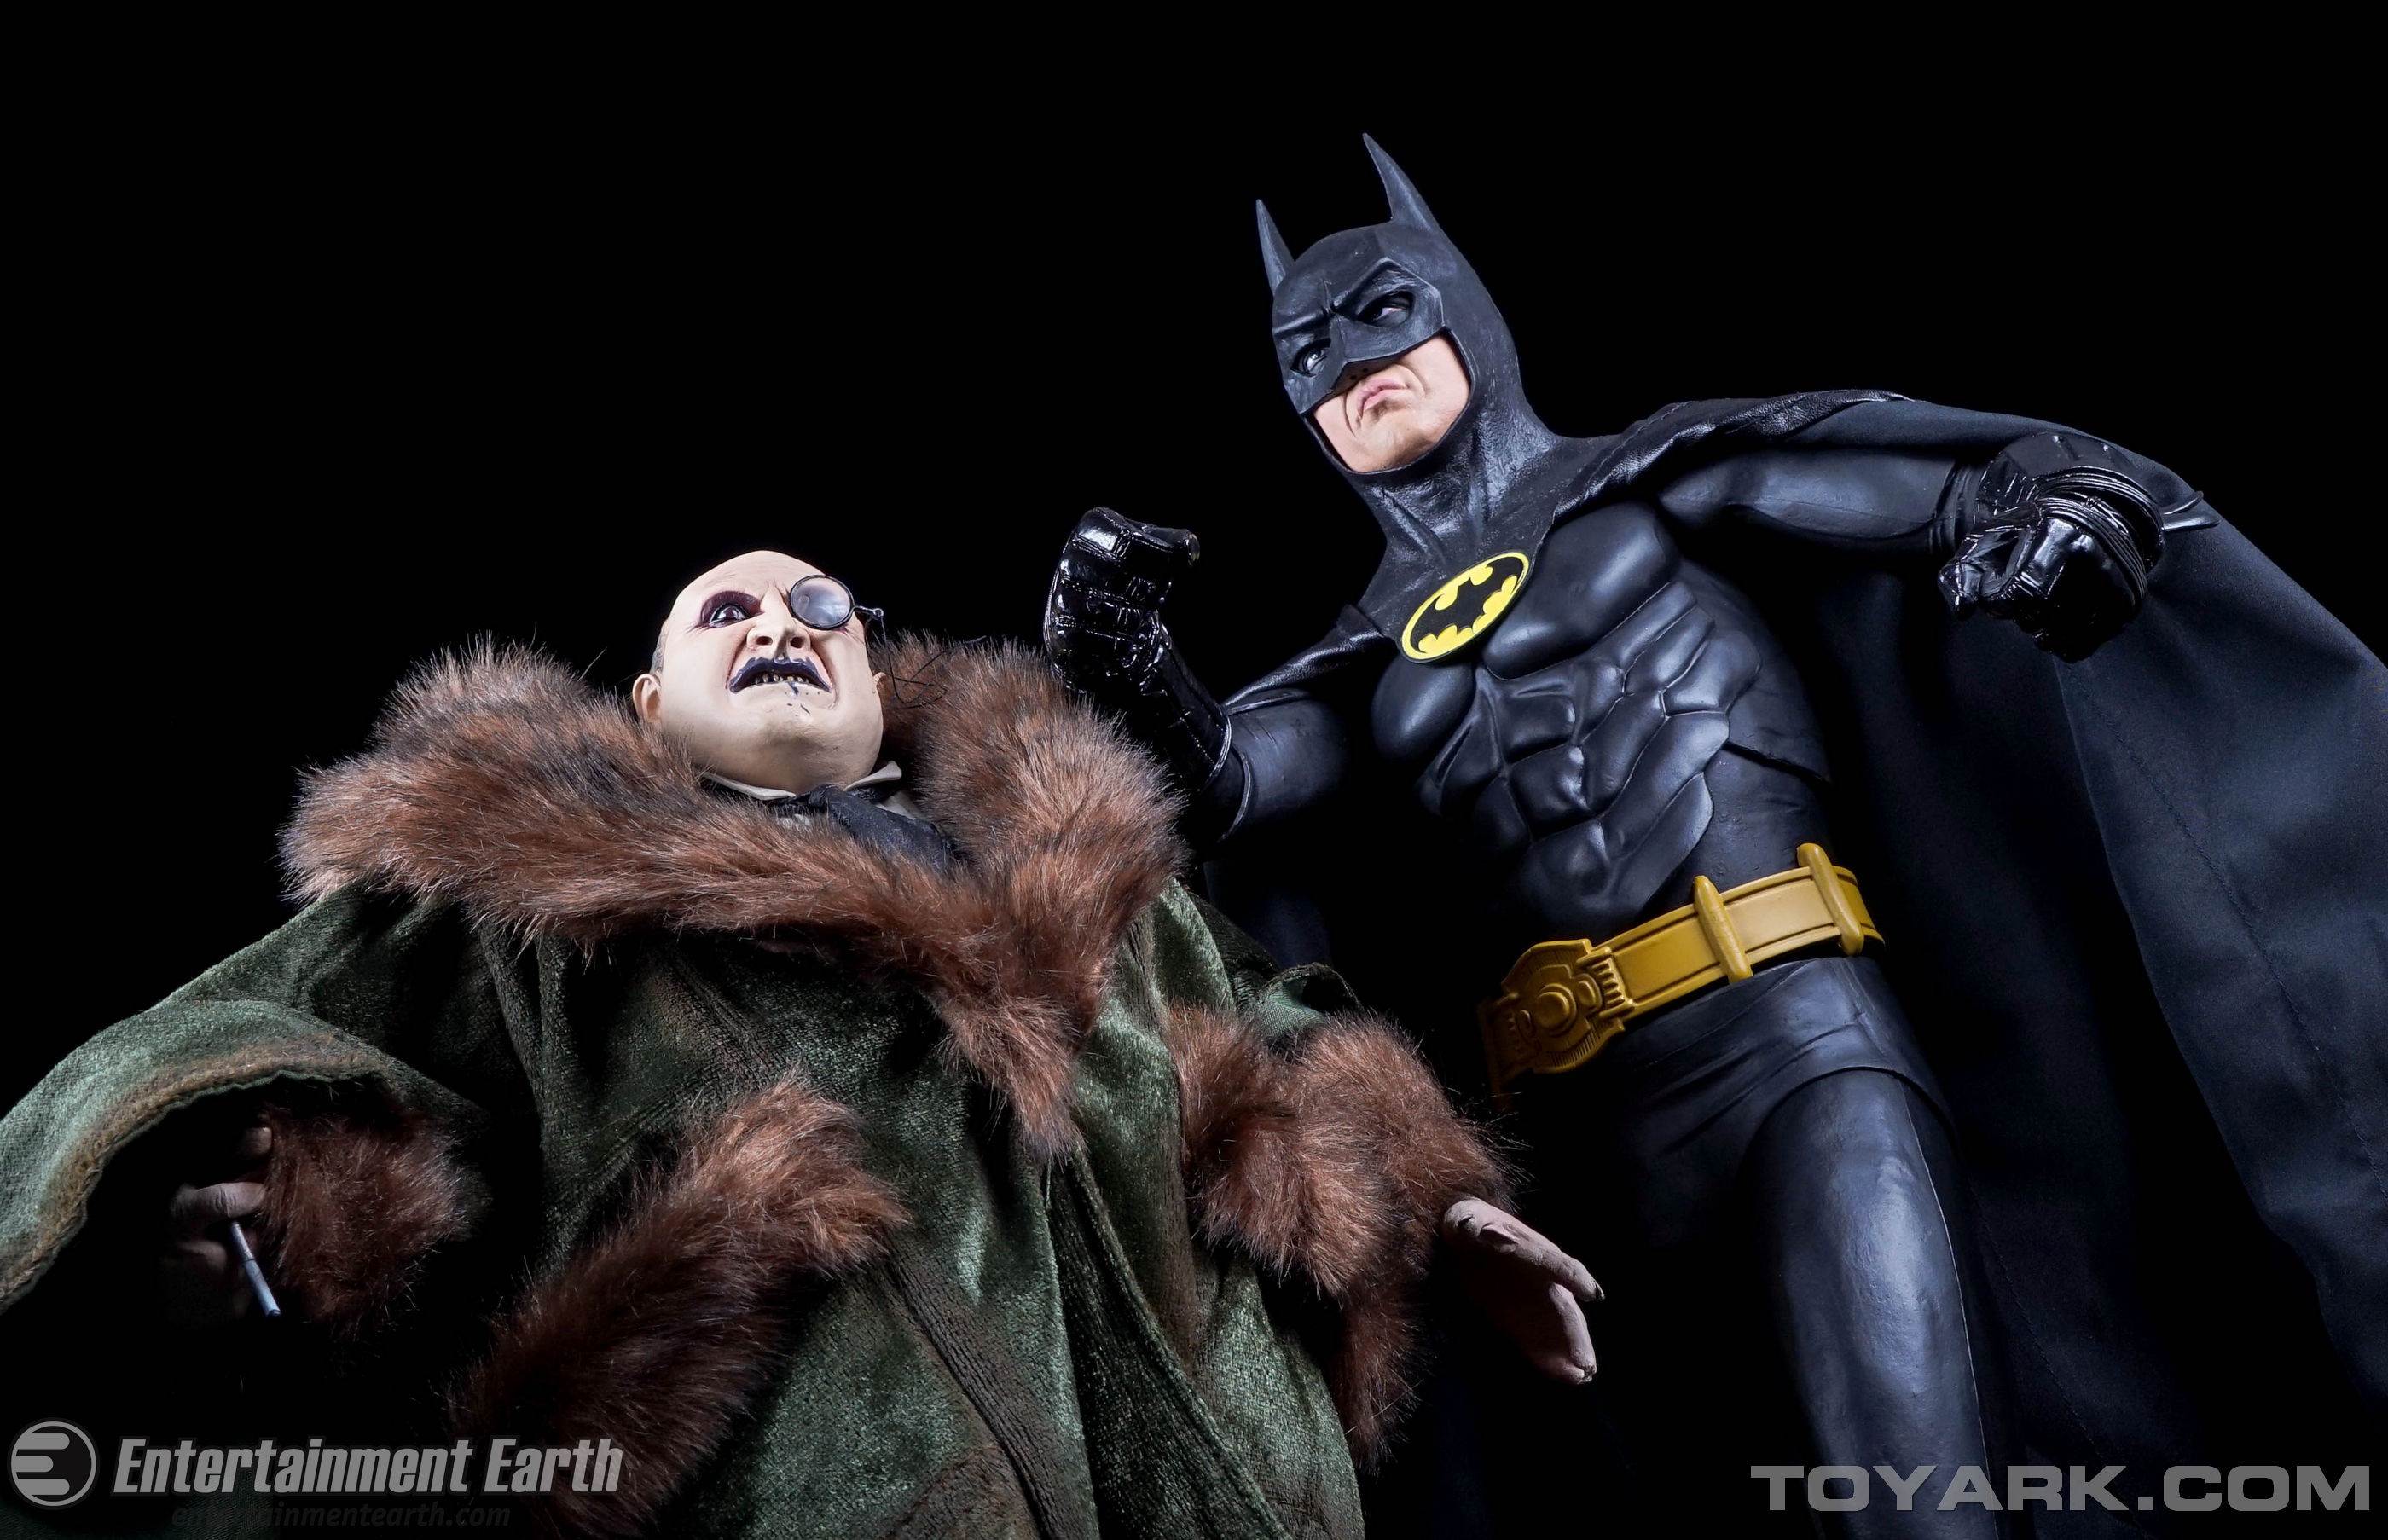 http://news.toyark.com/wp-content/uploads/sites/4/2015/09/NECA-Batman-Returns-Penguin-062.jpg